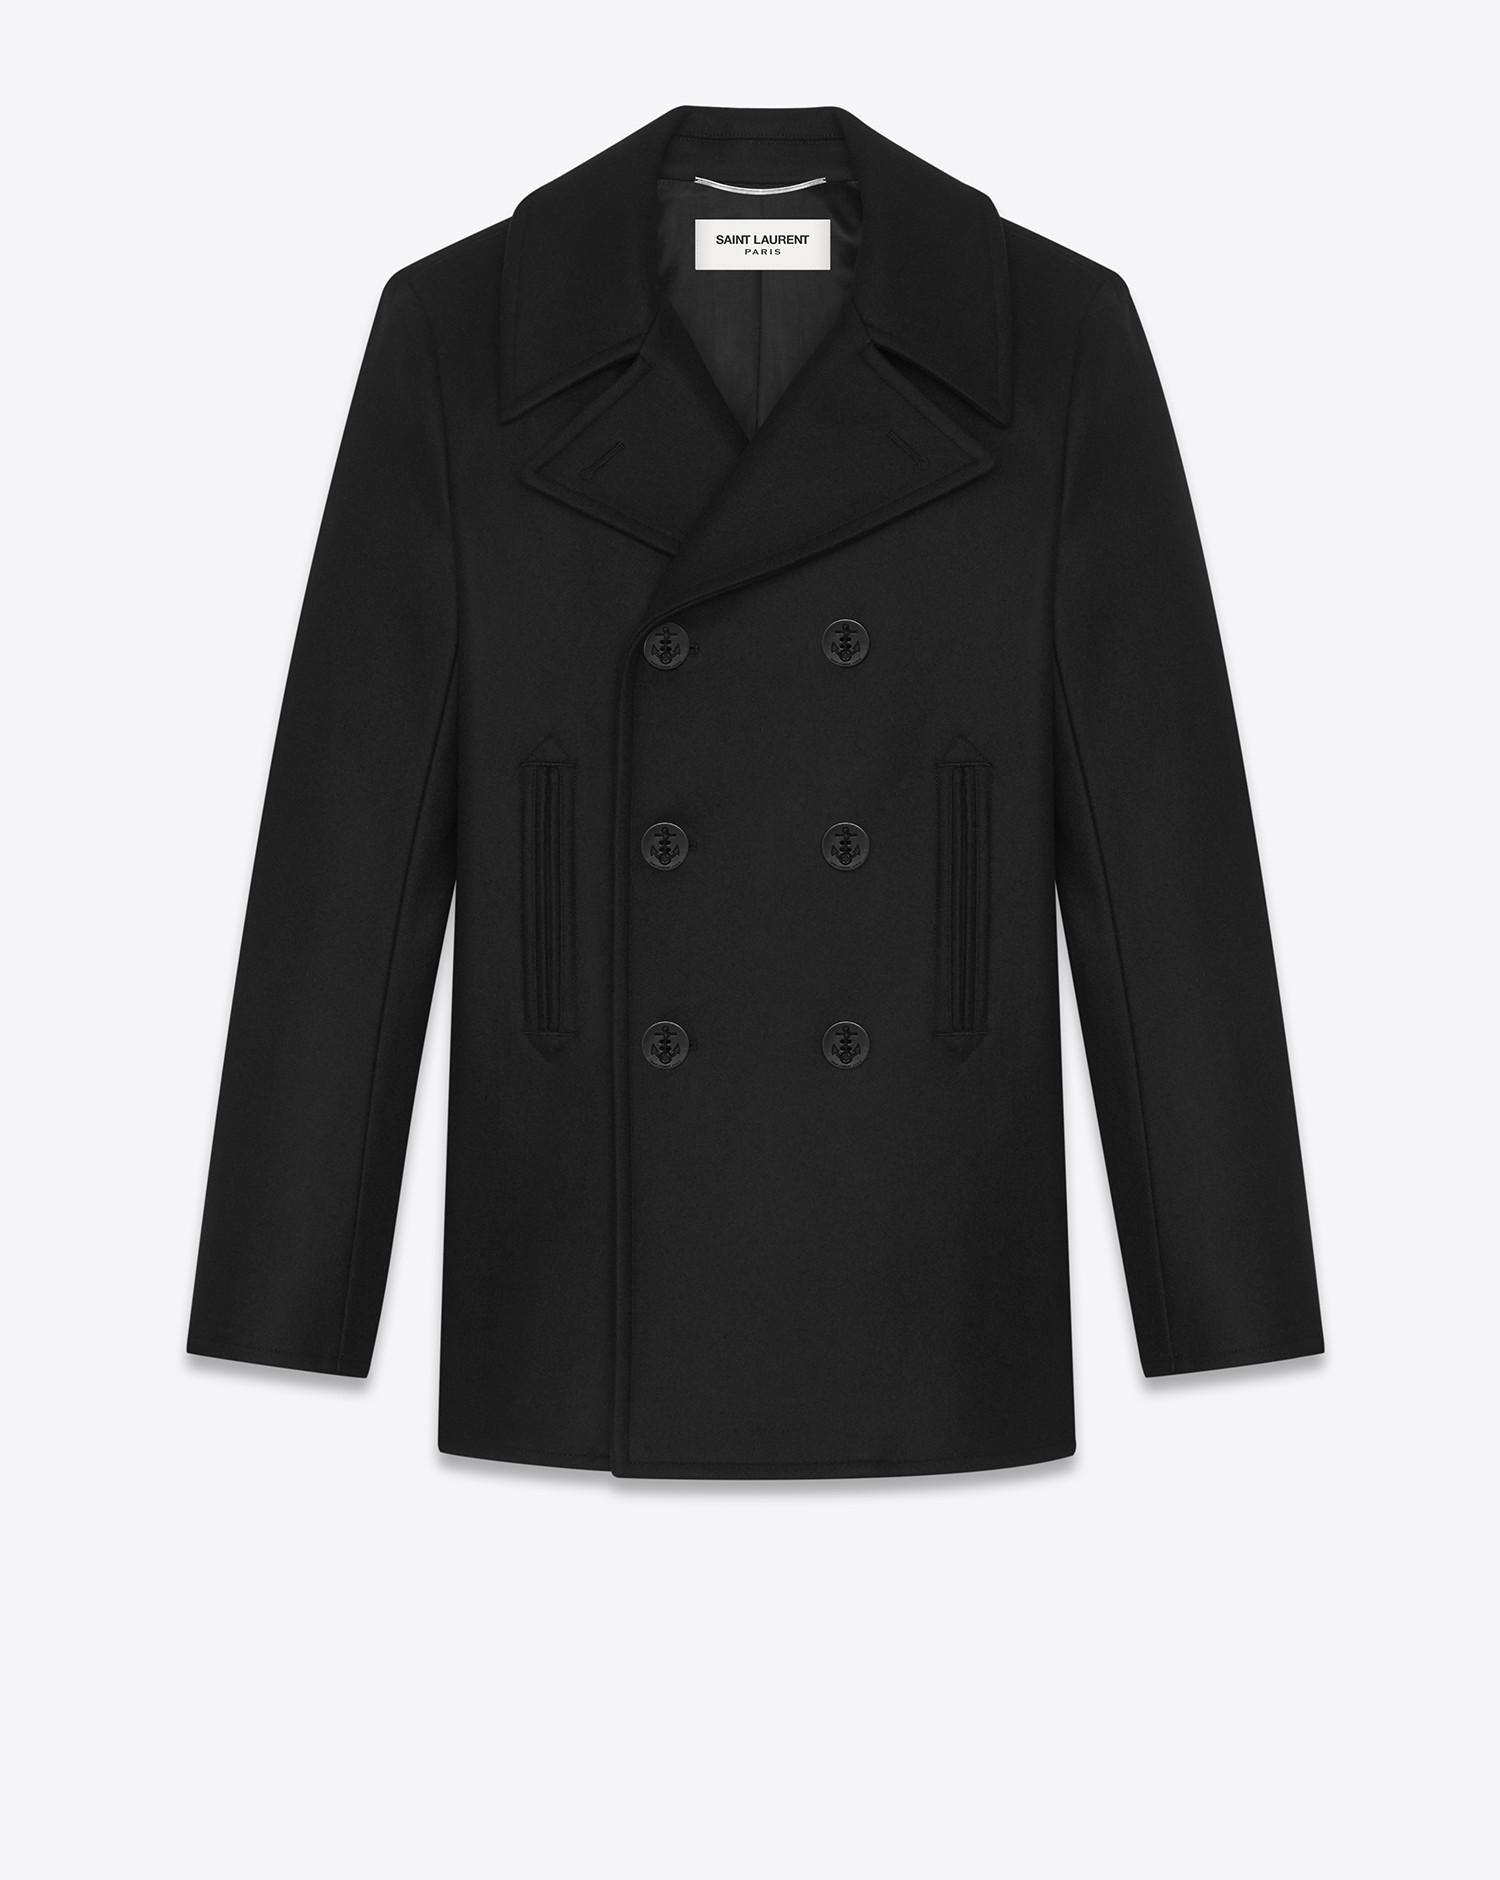 Outlet Extremely Cheap New Saint Laurent chevron caban coat - Black Latest Cheap Price 2uGE91